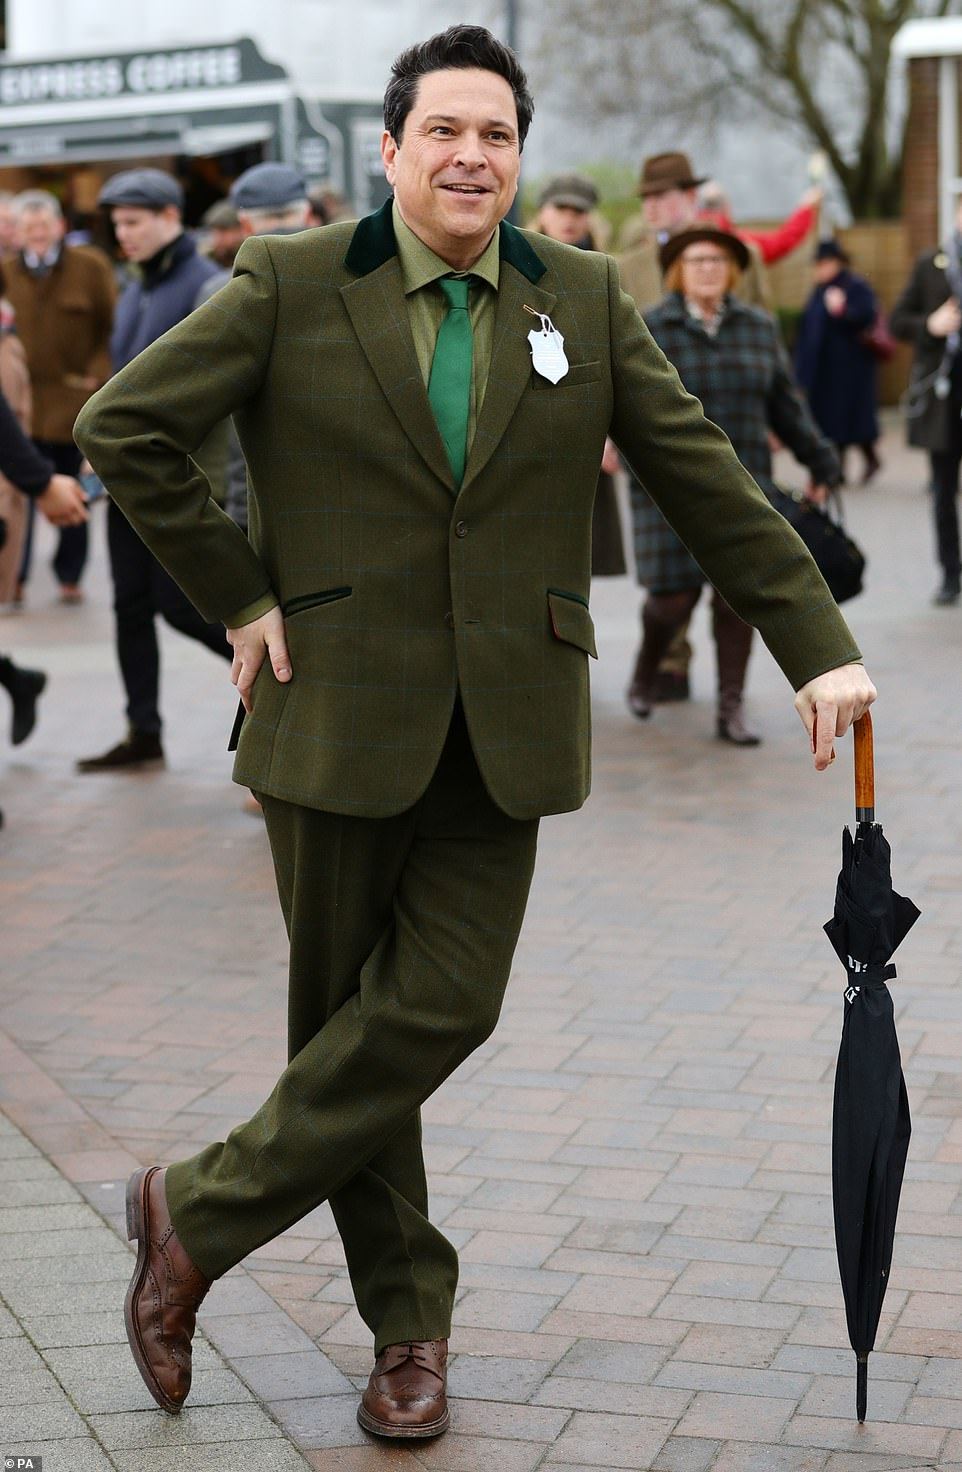 Comedian Dom Joly also came prepared for the wet weather, and donned a smart green tartan check wool suit - a nod to the surrounding Gloucestershire countryside